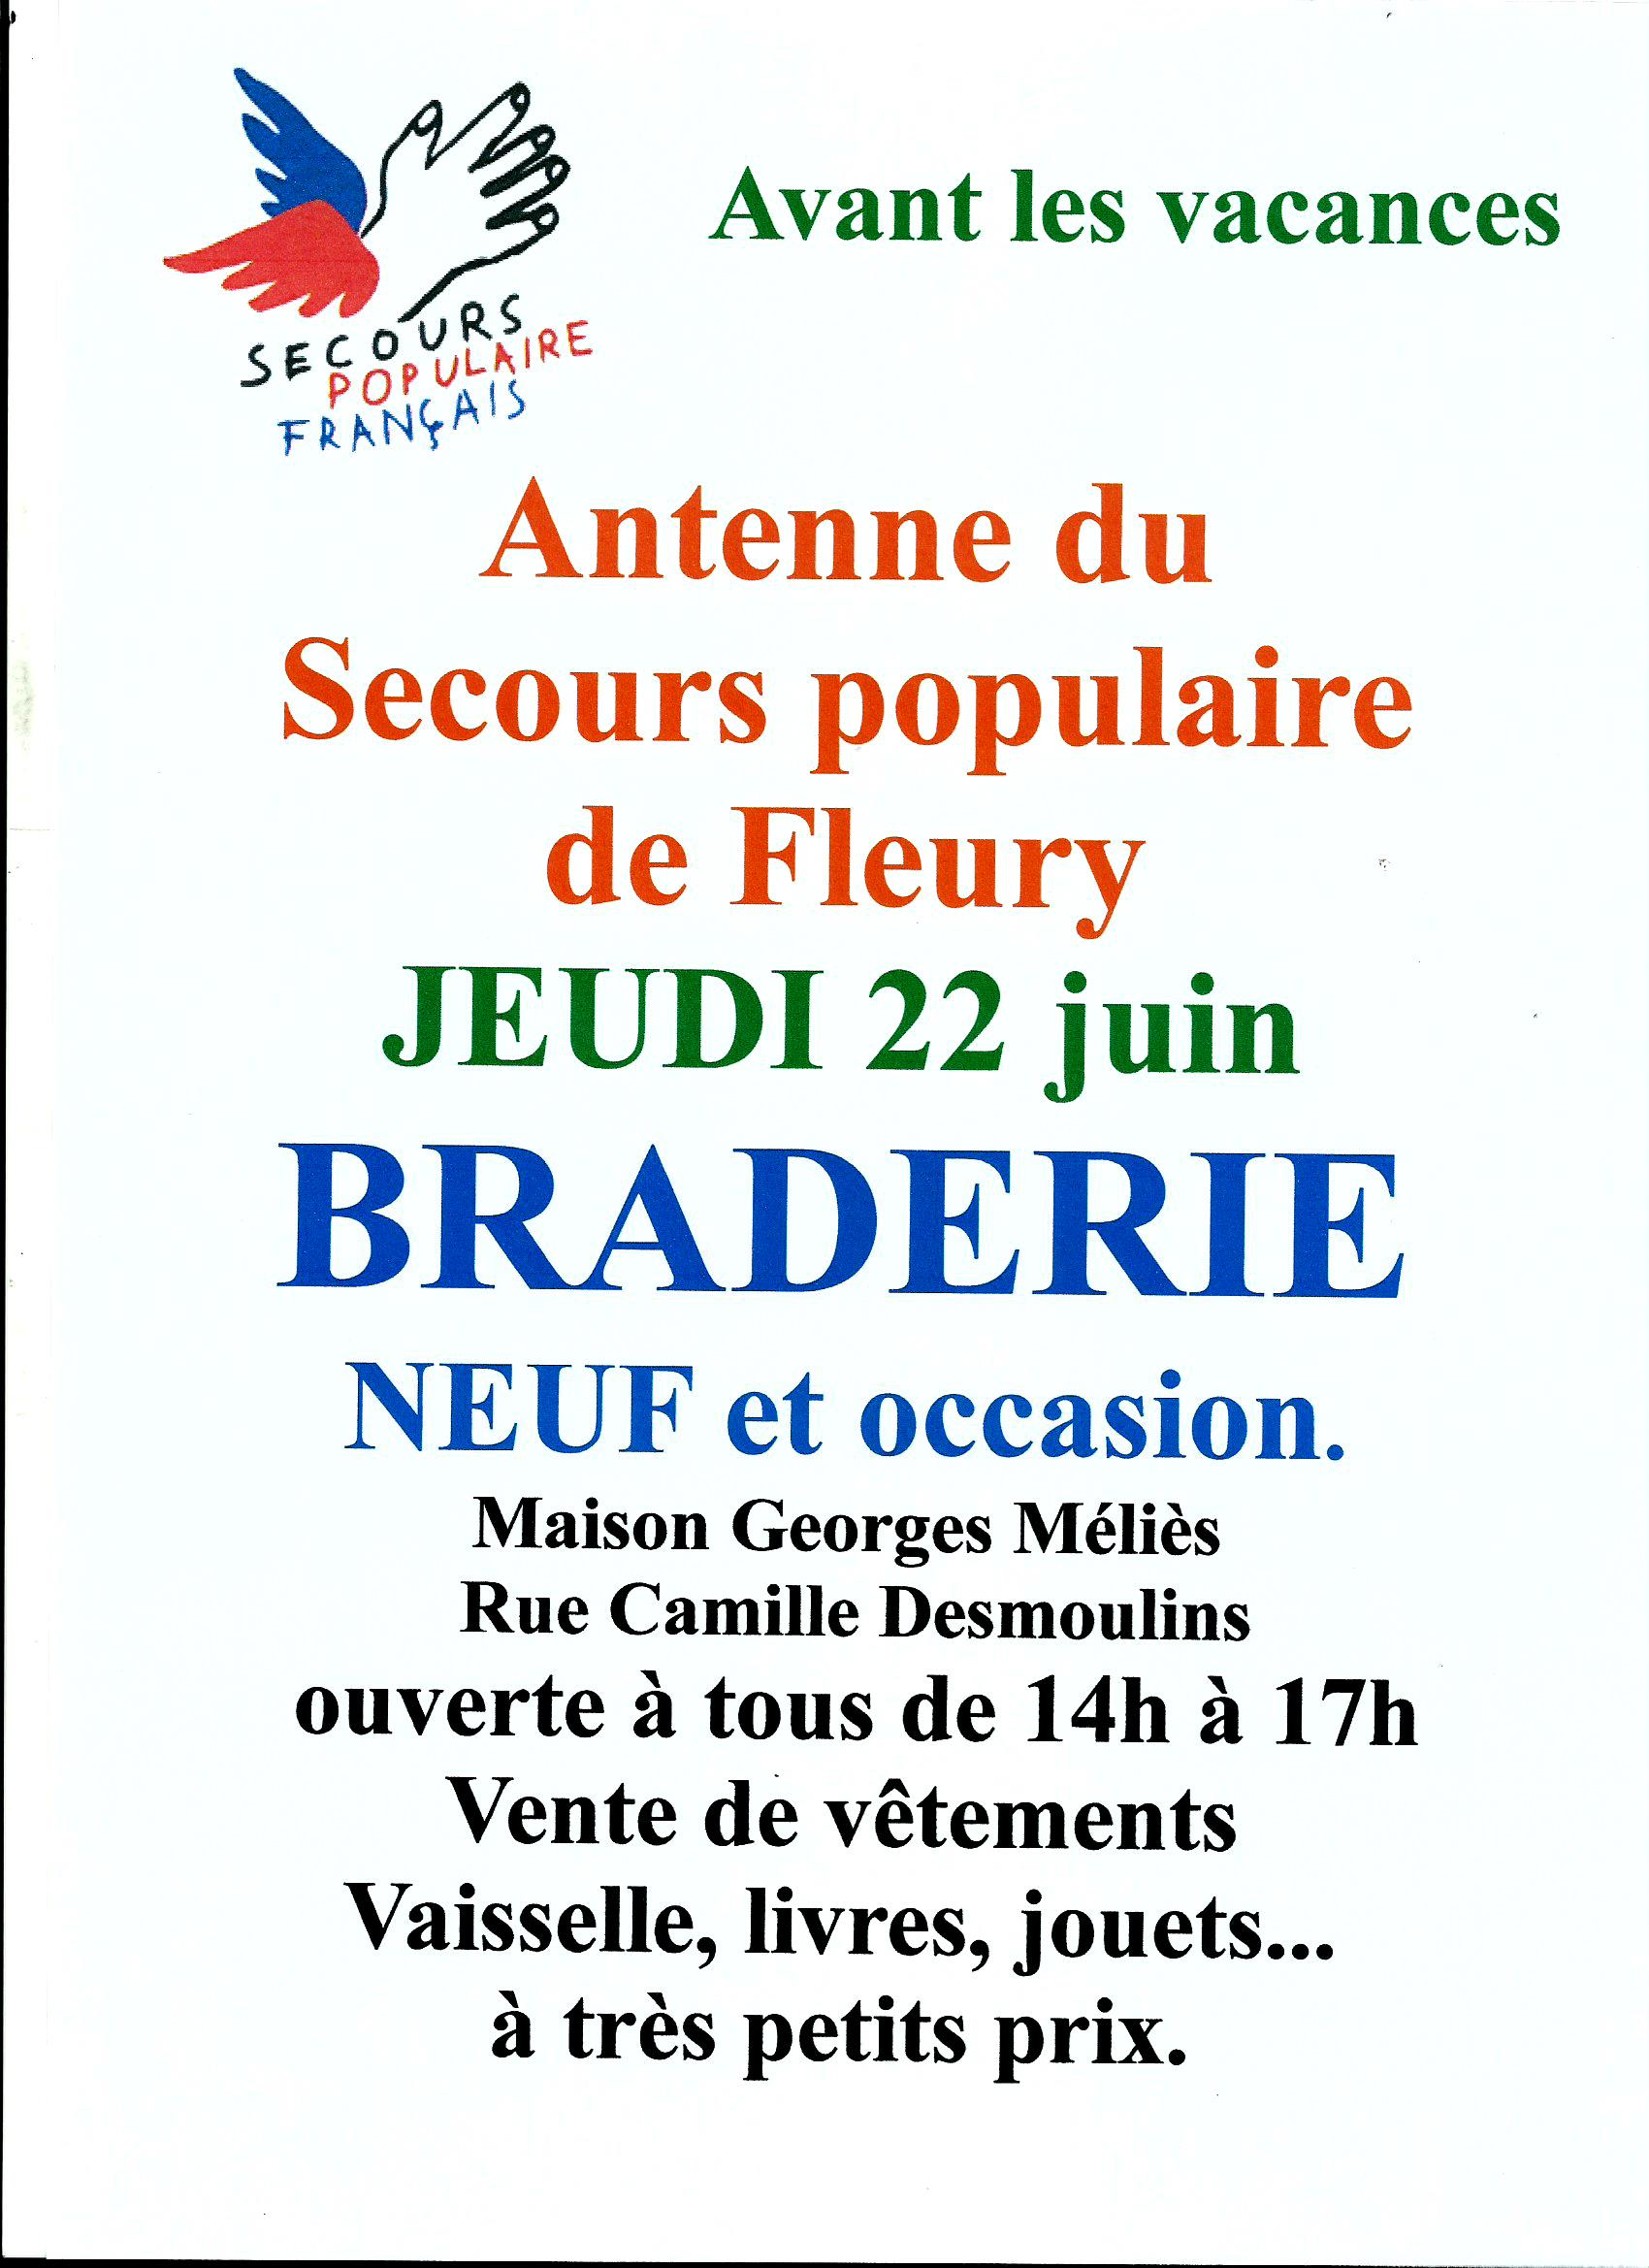 Scan Affiche Braderie neuf et occasion Secours Populaire França.jpg